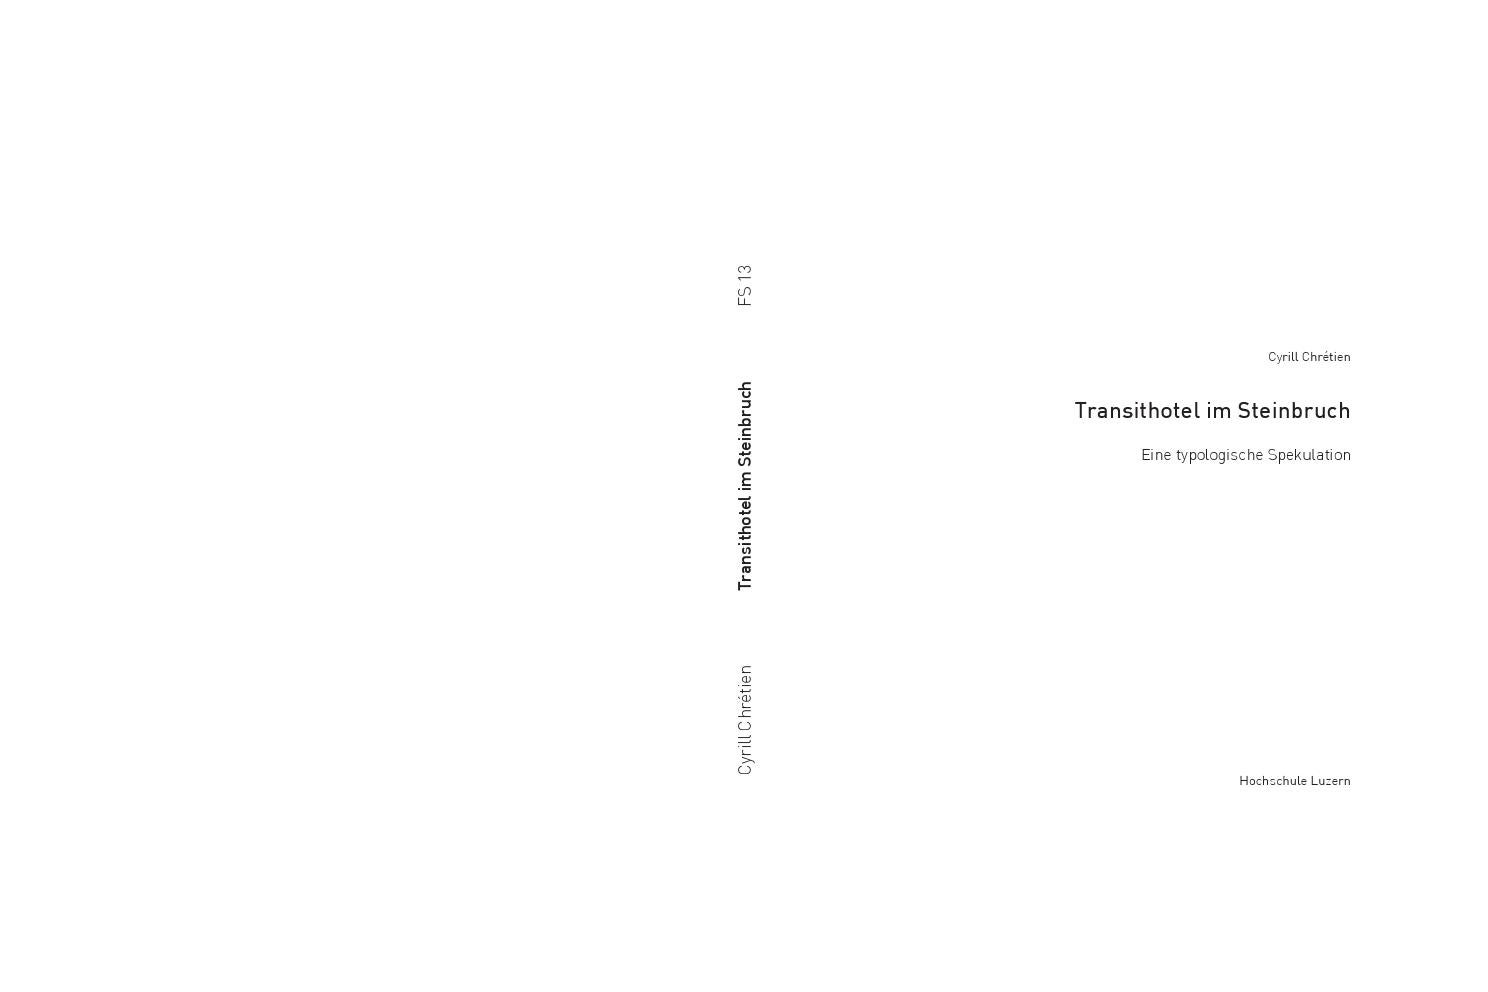 2013_fs_masterthesis by Cyrill Chrétien - issuu